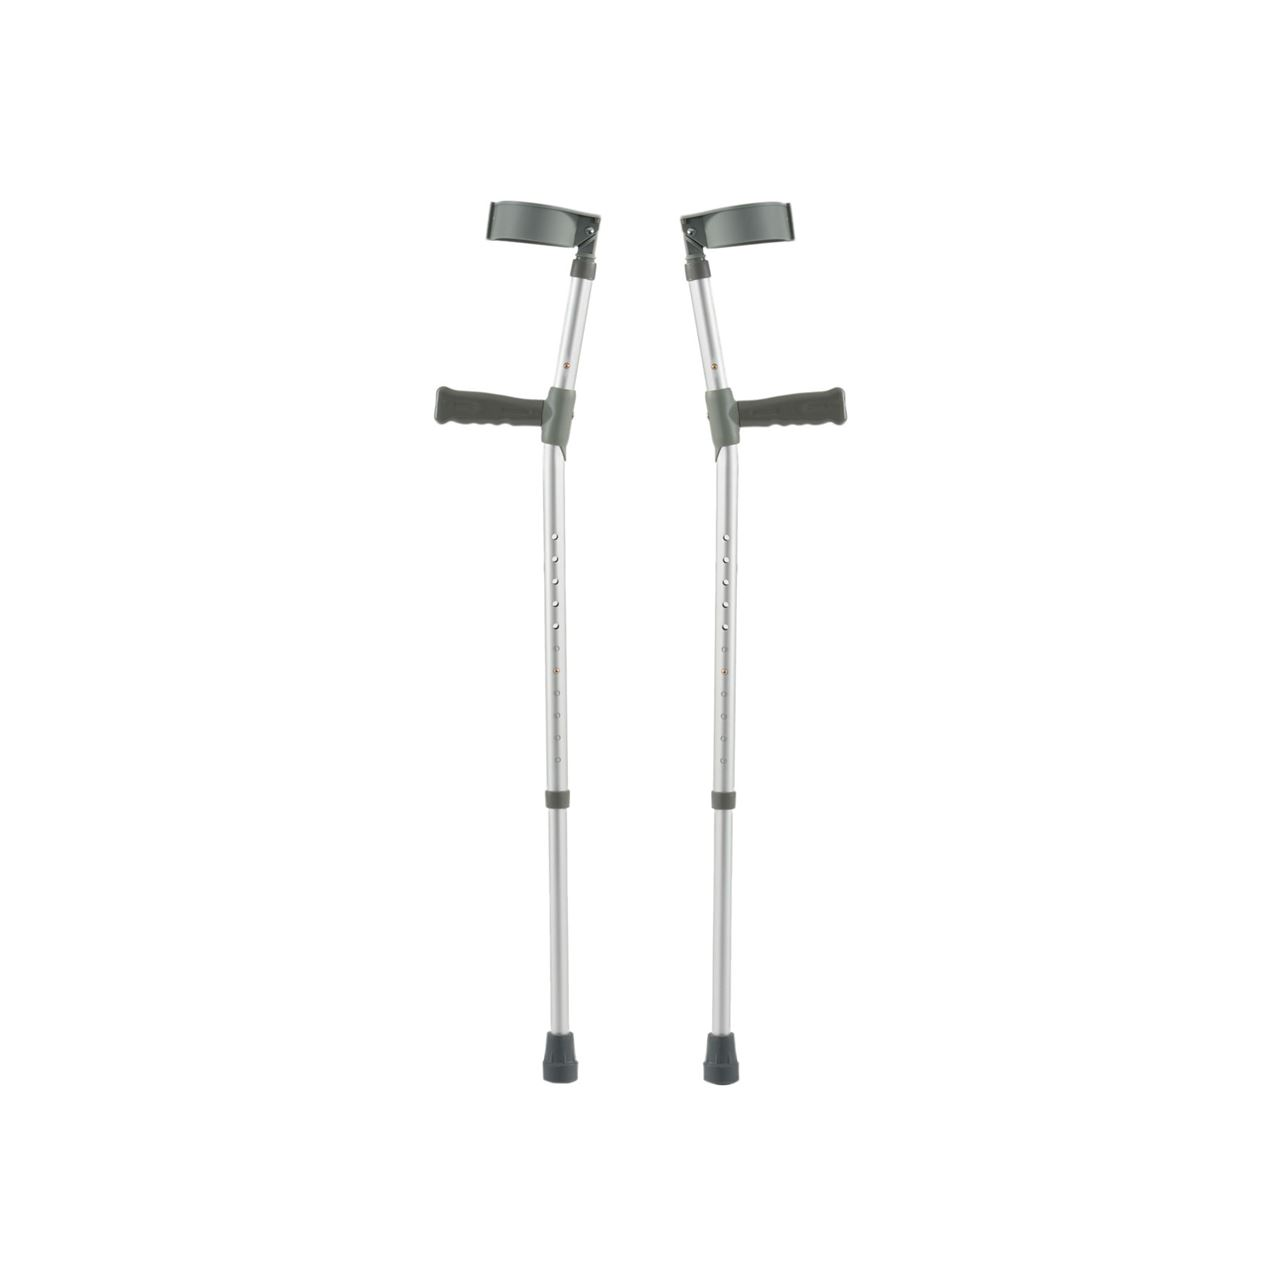 Picture for category Single Adjustable Crutches